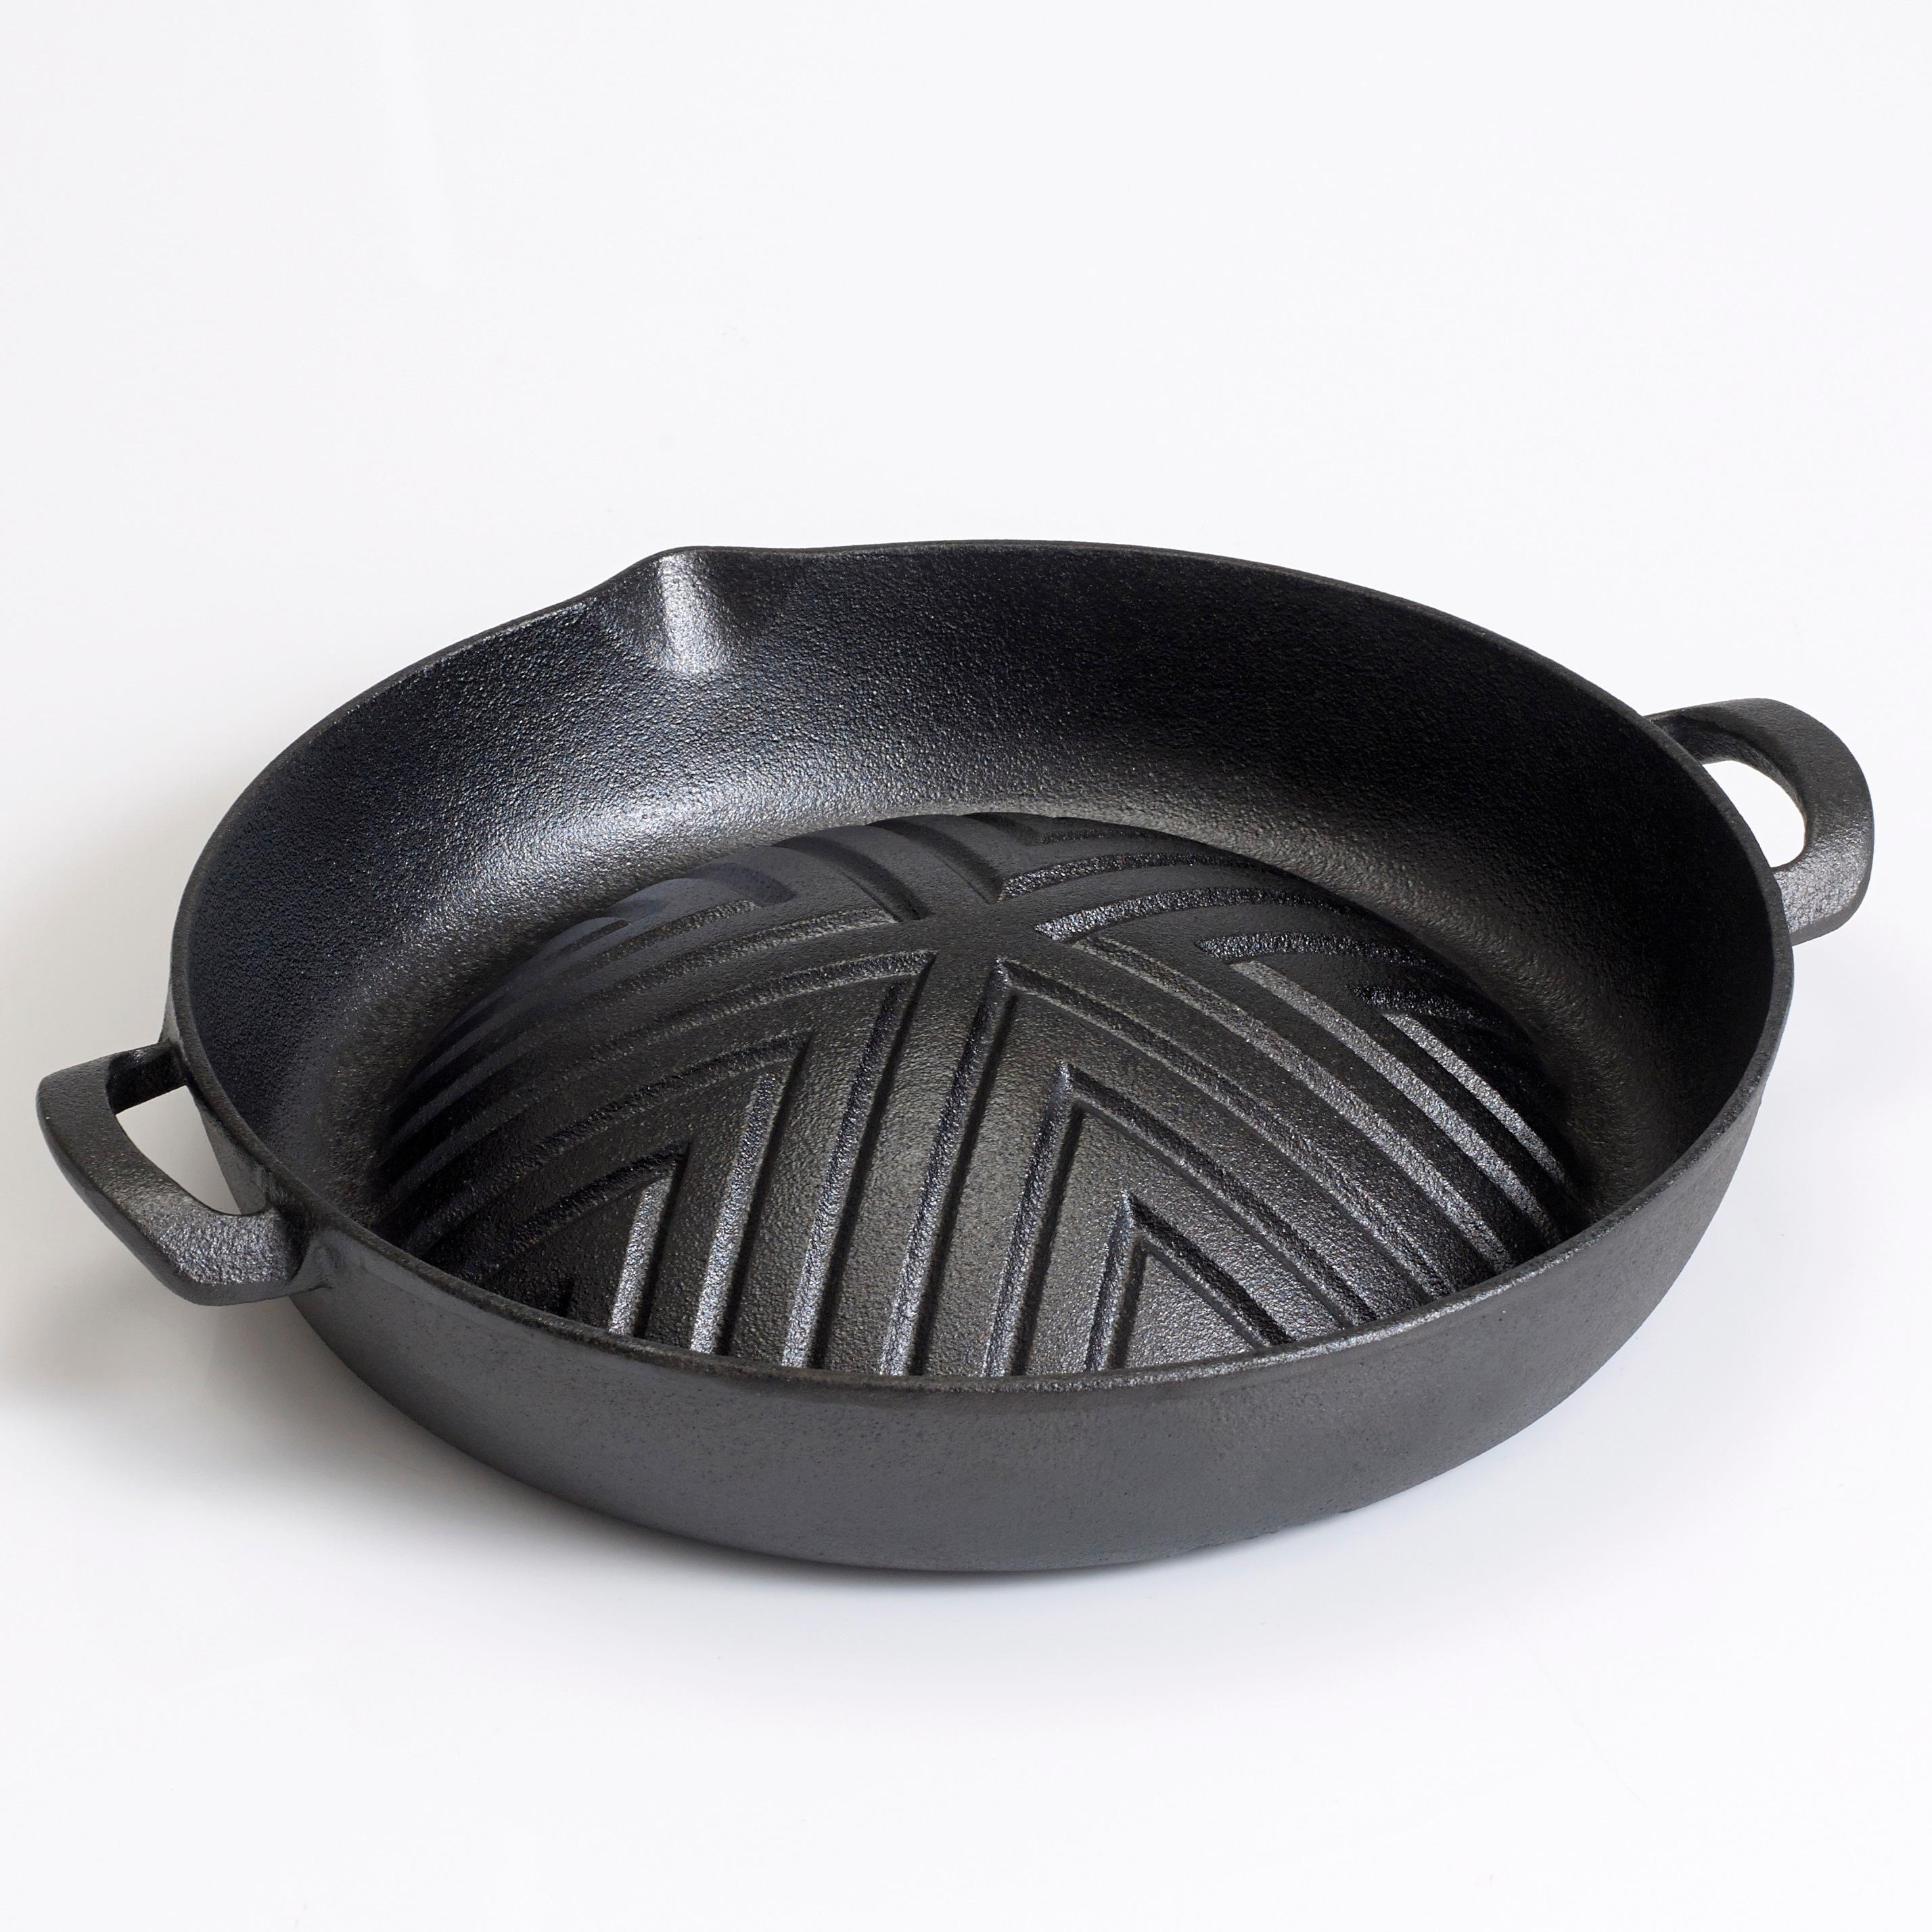 Why Use A Cast Iron Skillet: Victor Cast Iron Skillet, 11.5-inch, Black, 45x30.5x5 Cm